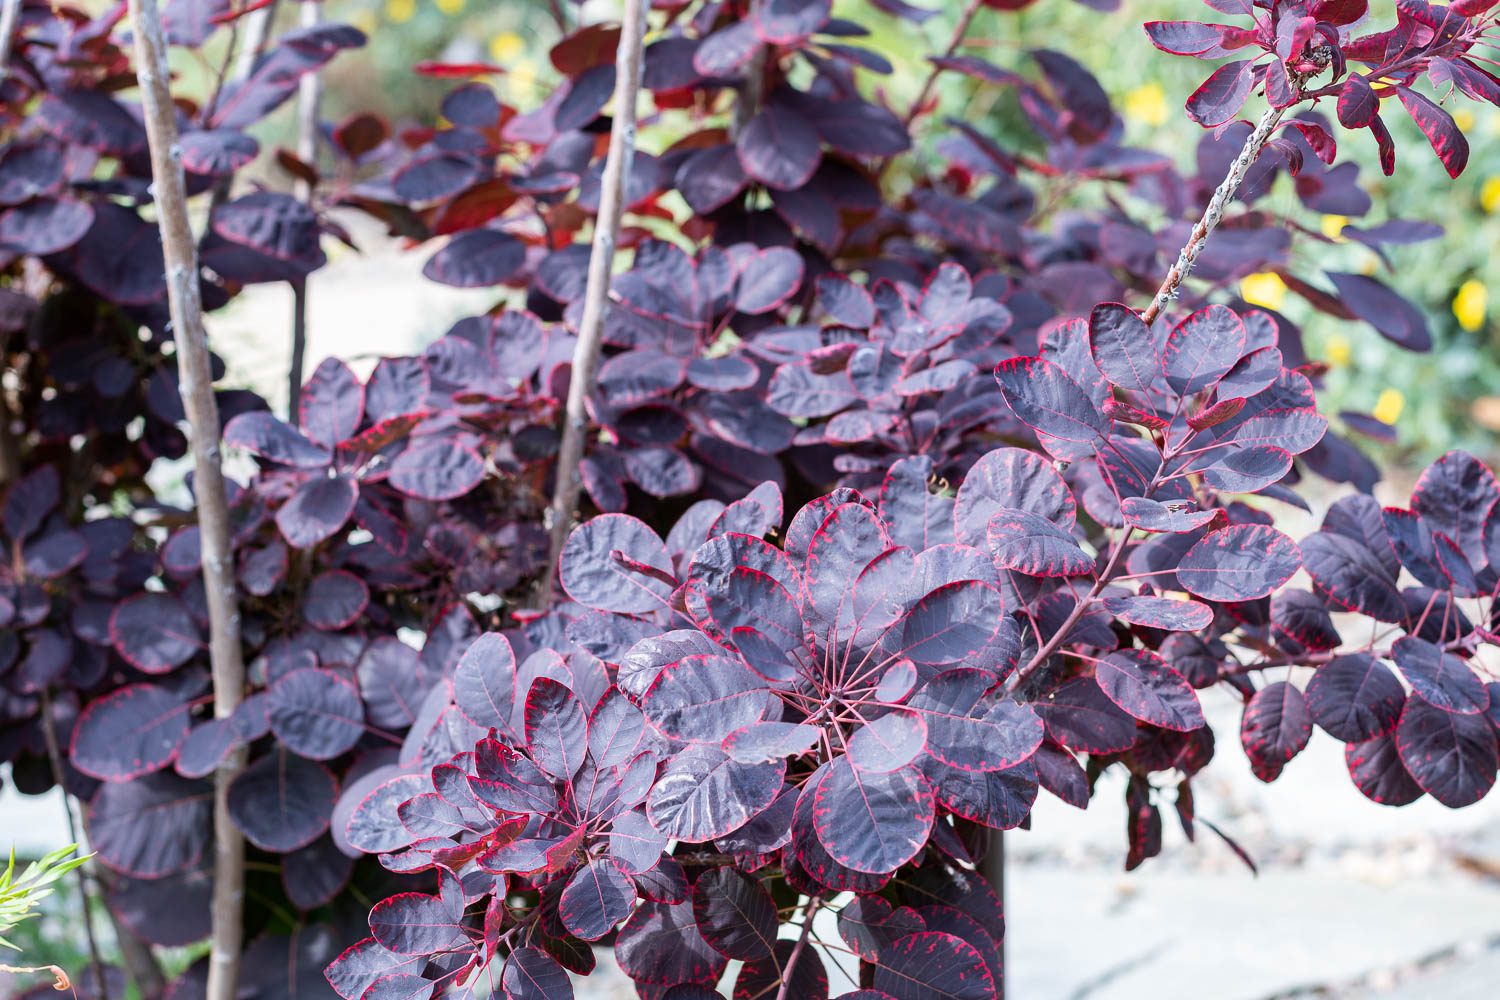 Purple Smoke Tree - This little tree has taken its time growing into its true self. It's still in a funny adolescent stage with leggy stalks and no showy flowers. I fell in love with it for the fluffy, smokey, flowers (click the button to see) but this tree hasn't quite matured into a flower-developing fella. However, those pretty variegated leaves and burgundy color are still gorgeous and it adds nice height by the flagstone pathway. These trees also come in different hues including a pale green leaf with cotton candy flowers.